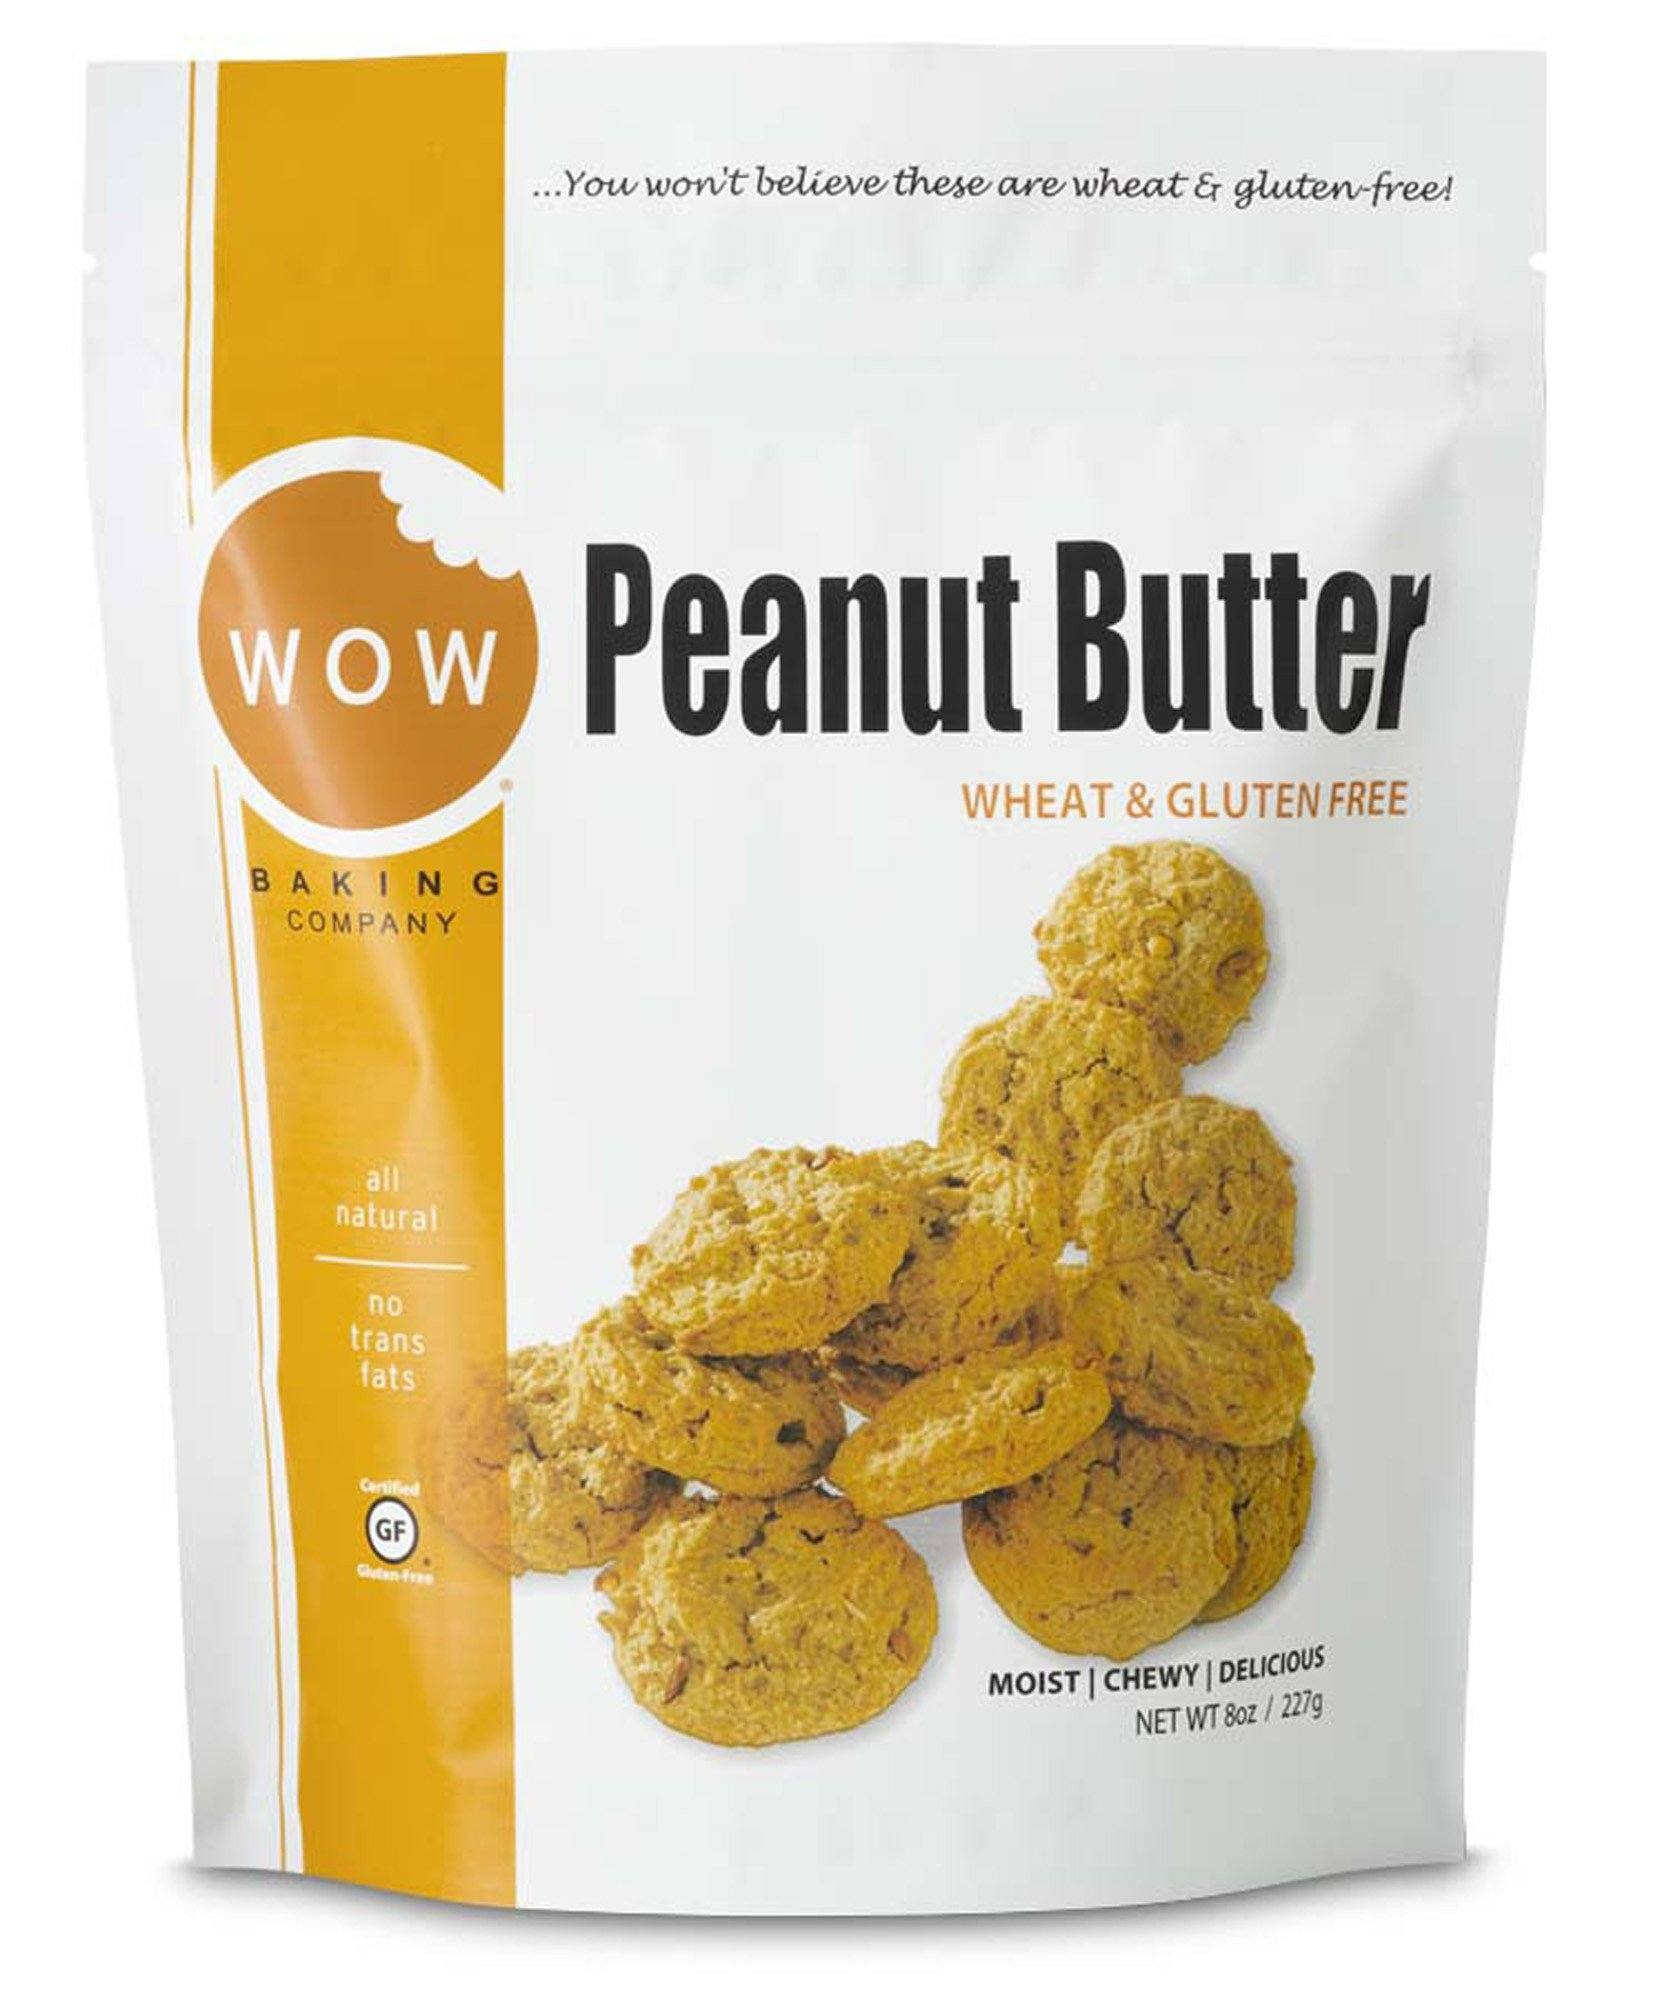 Food & Drink - WOW Baking Company - Peanut Butter Cookies, 227g